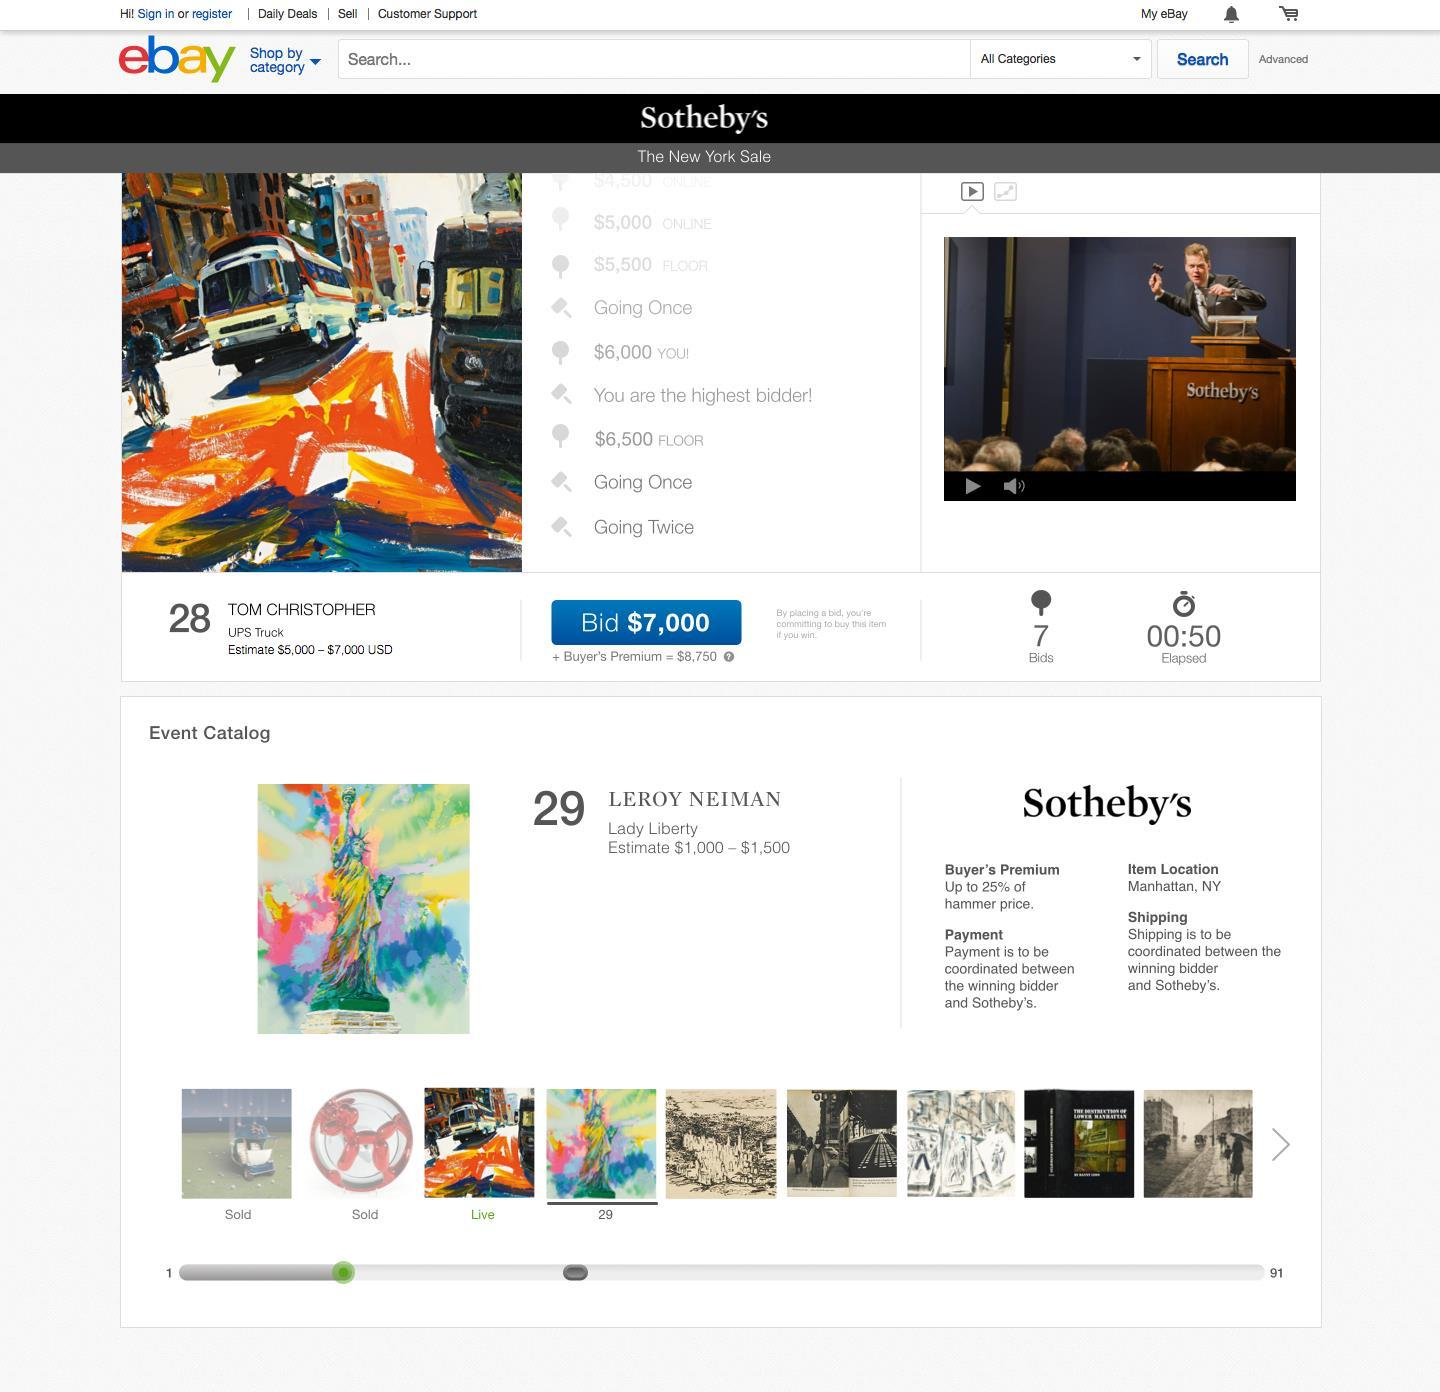 Ebay And Sotheby S First Online Auction To Take Place On April 1 News Retail Week